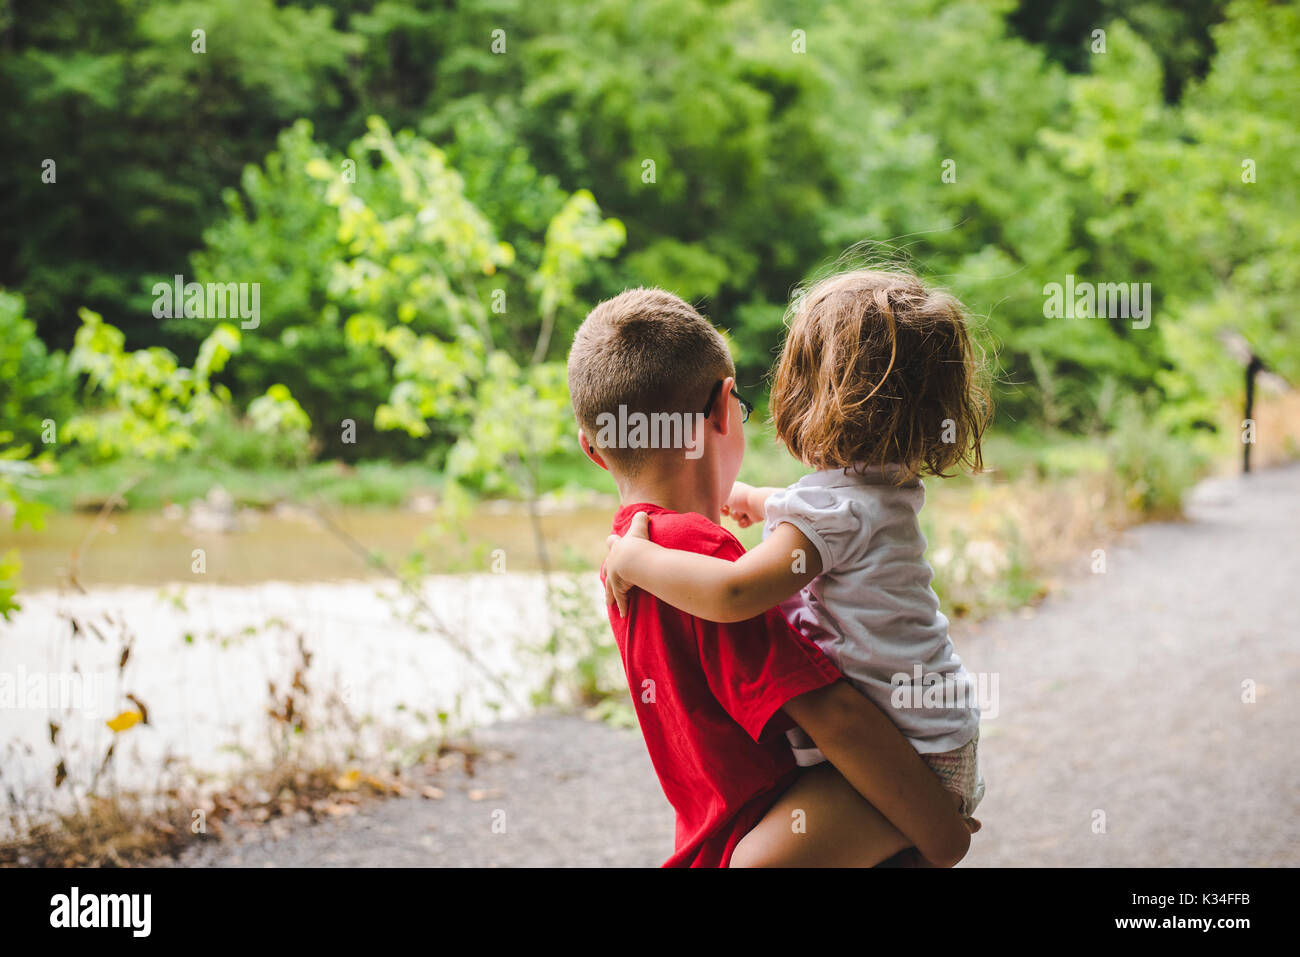 A little boy holds a little girl on a path lined by trees. - Stock Image